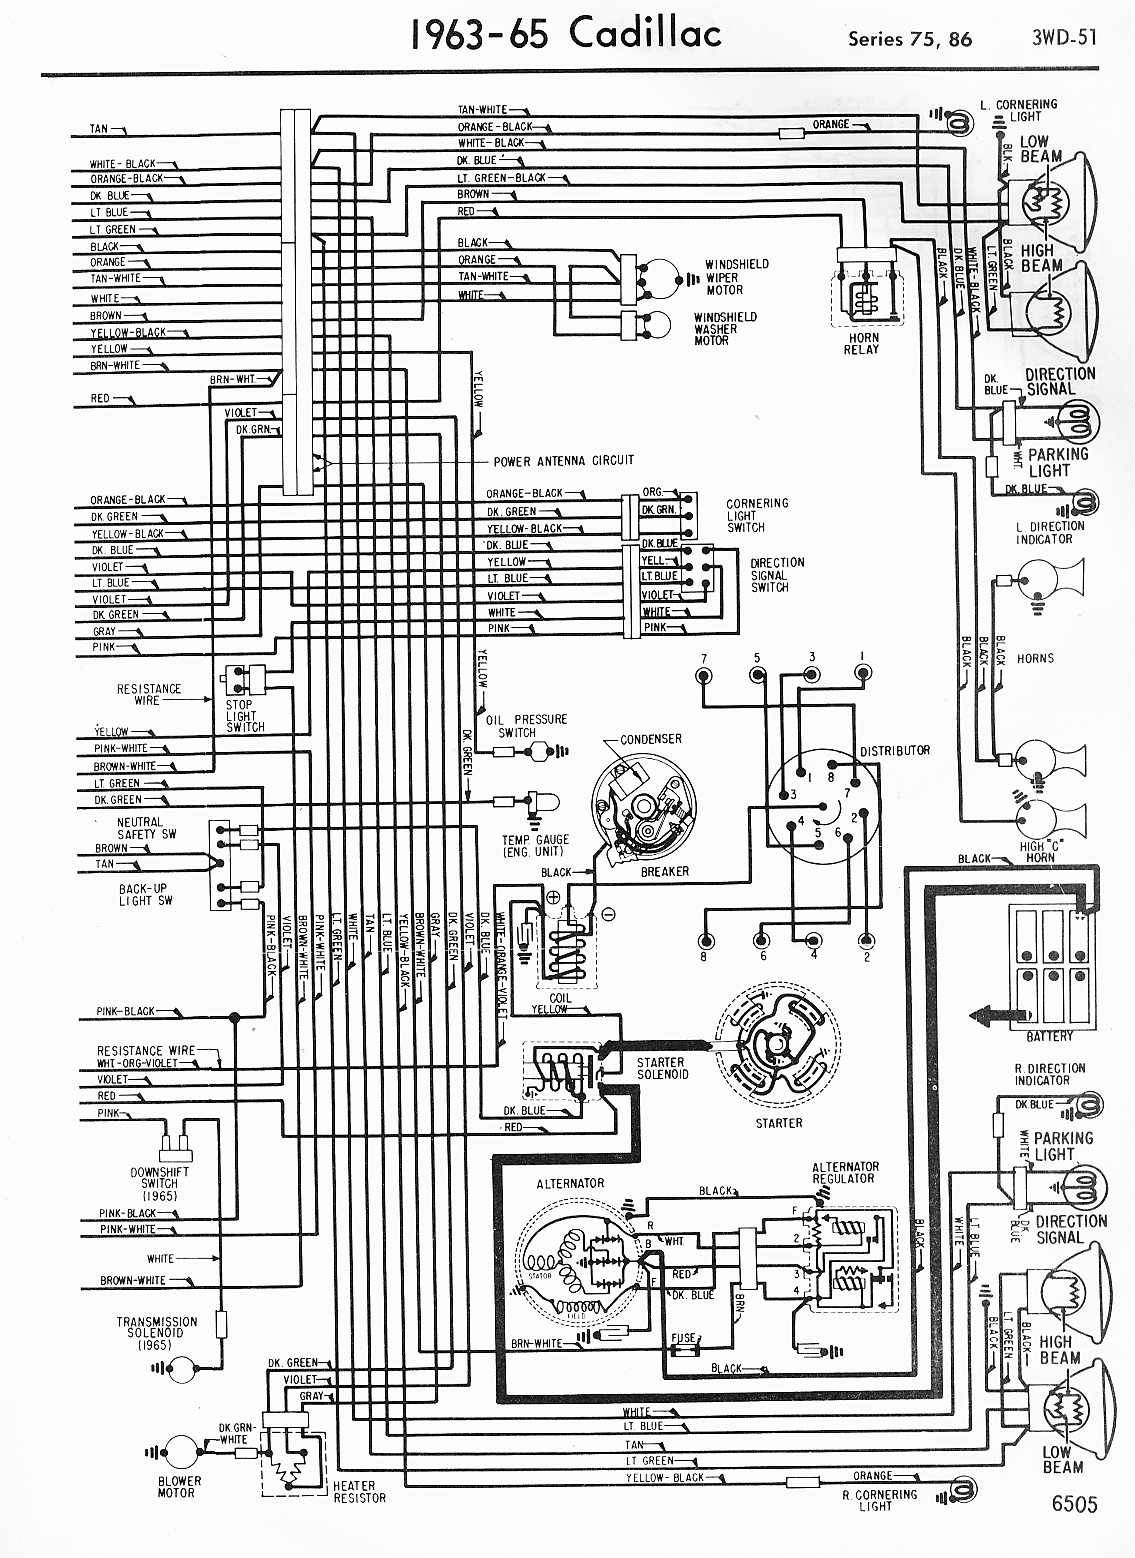 57 Chevy Fuse Box Location Auto Electrical Wiring Diagram Subaru Domingo Cadillac Diagrams 1957